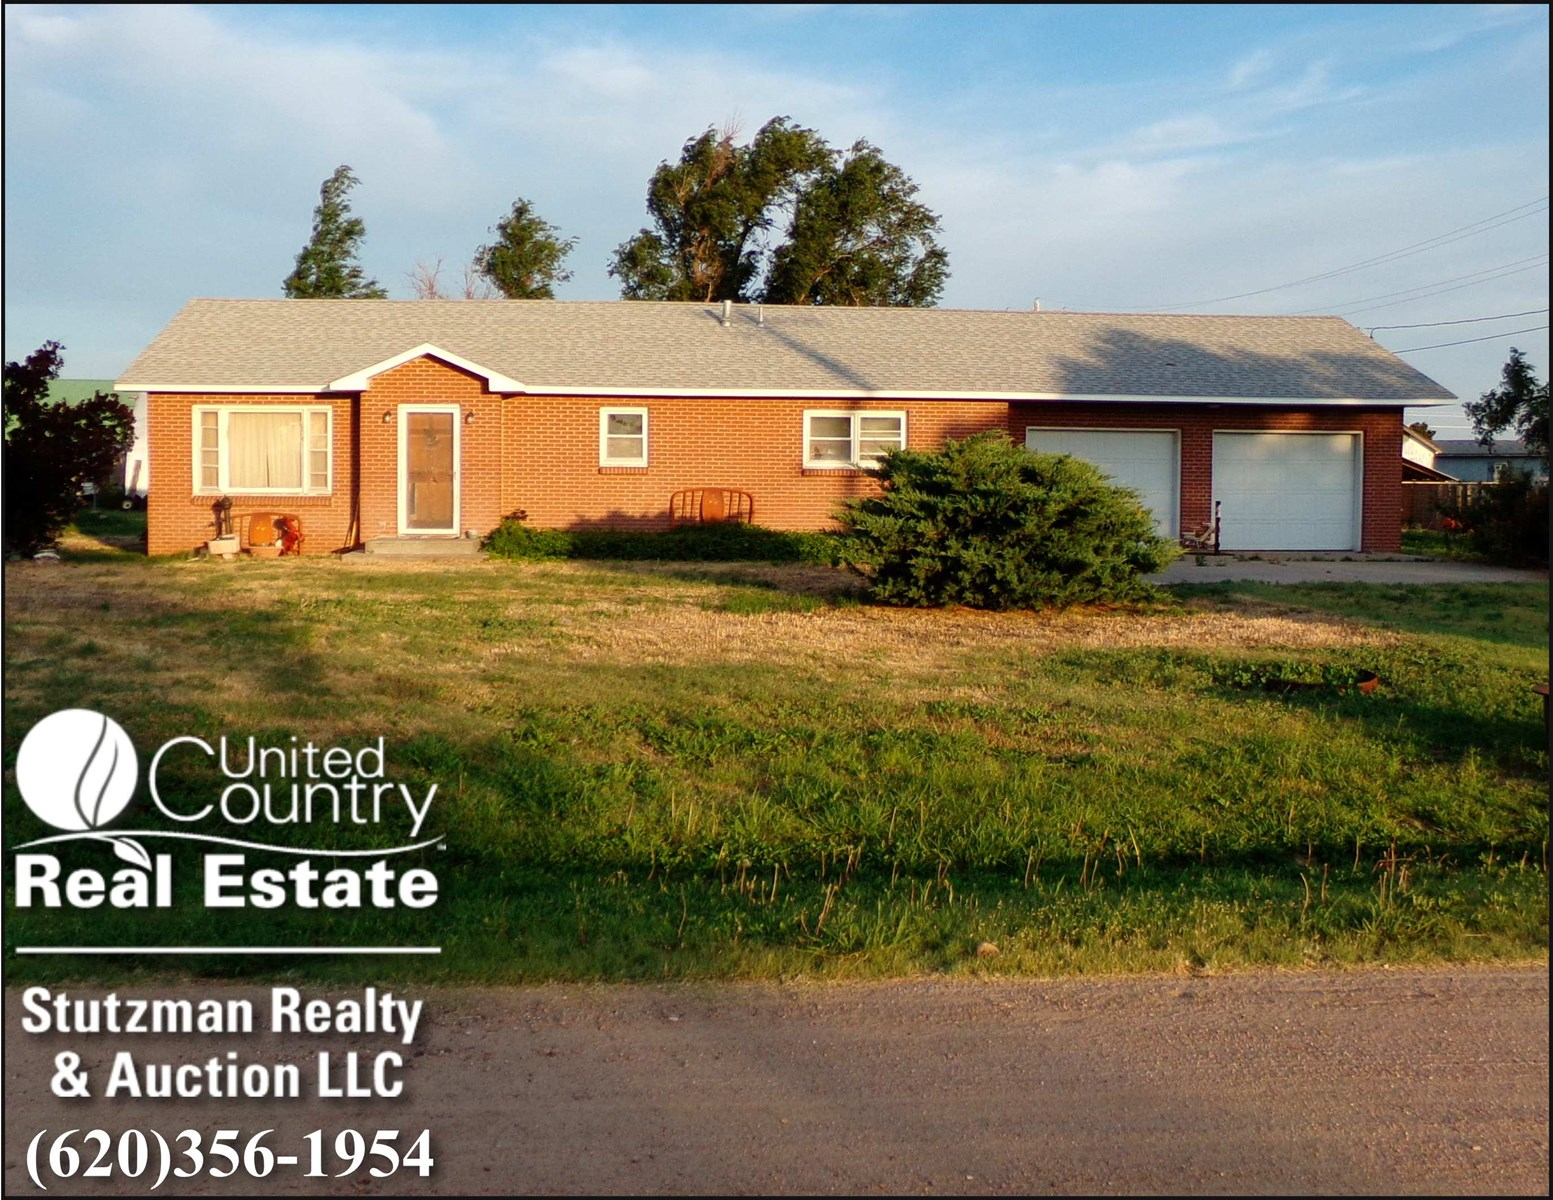 REAL ESTATE PRIVATE AUCTION ~ 204 N MONROE, MANTER, KS